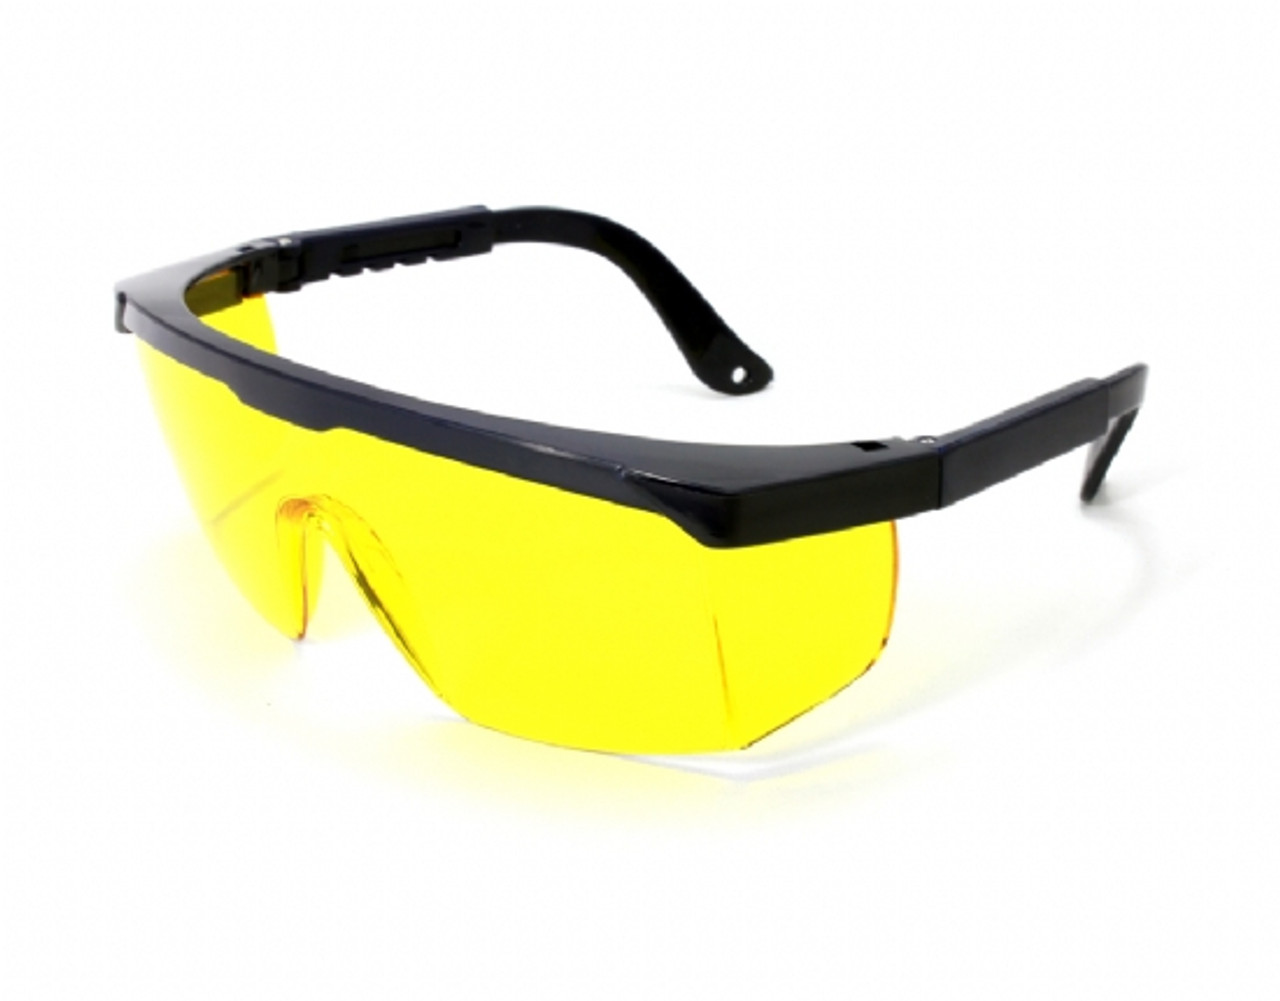 AG-EW-100 Safety Glasses for Use with Black Light